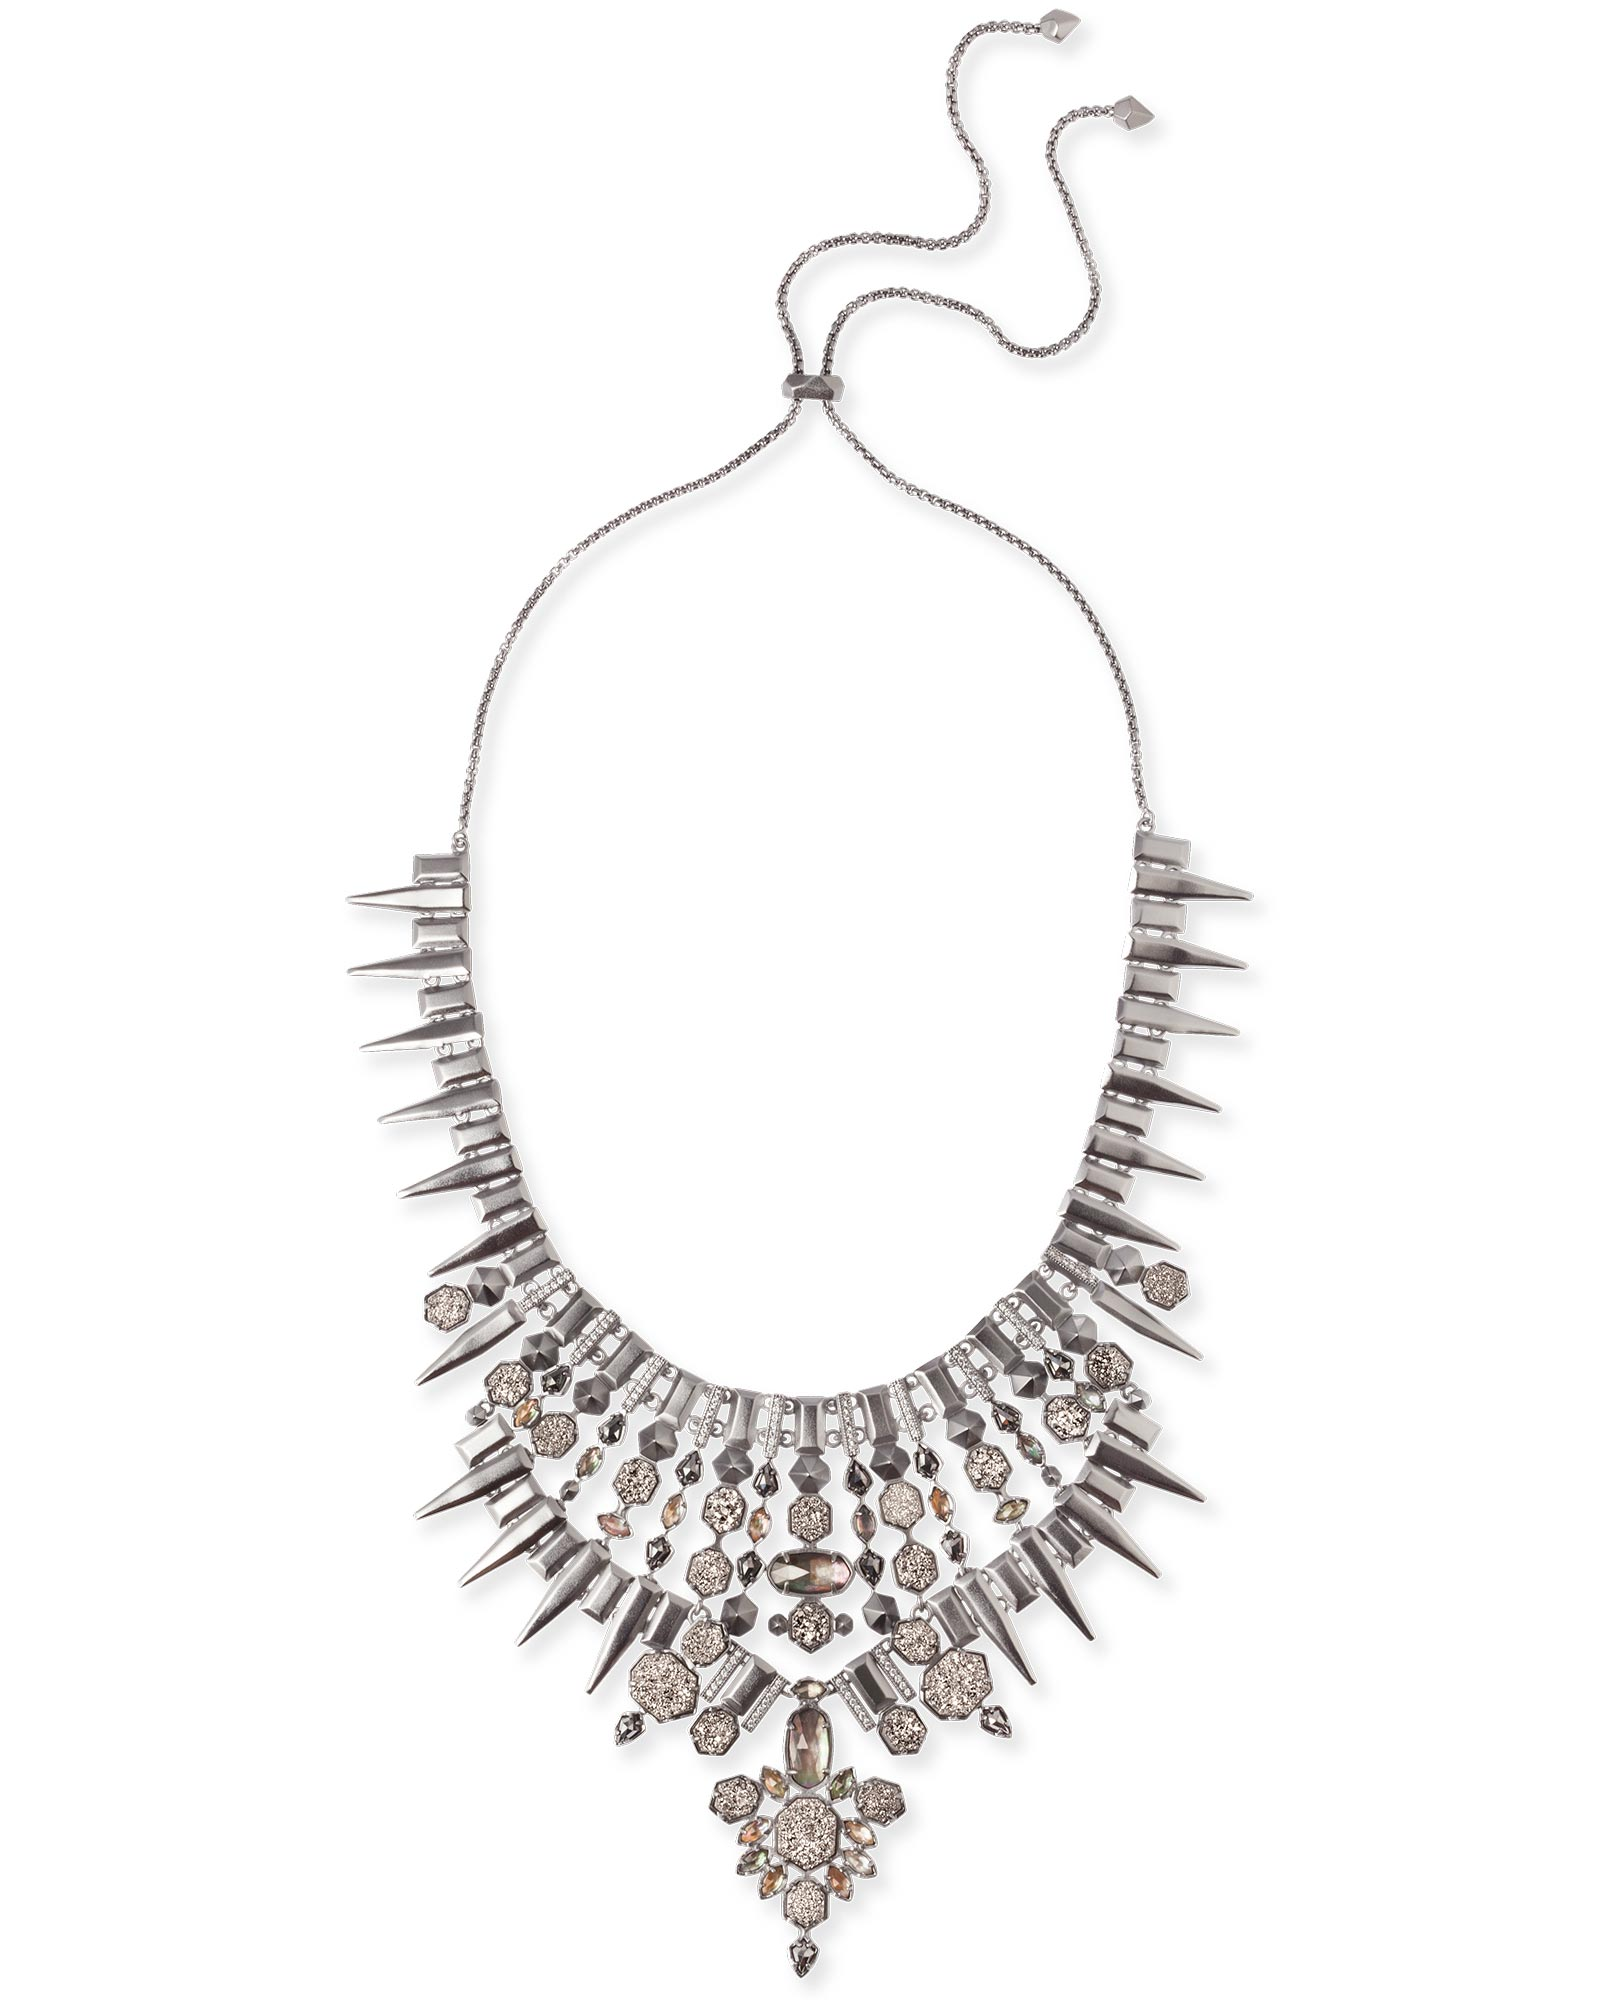 Seraphina Statement Necklace in Midnight